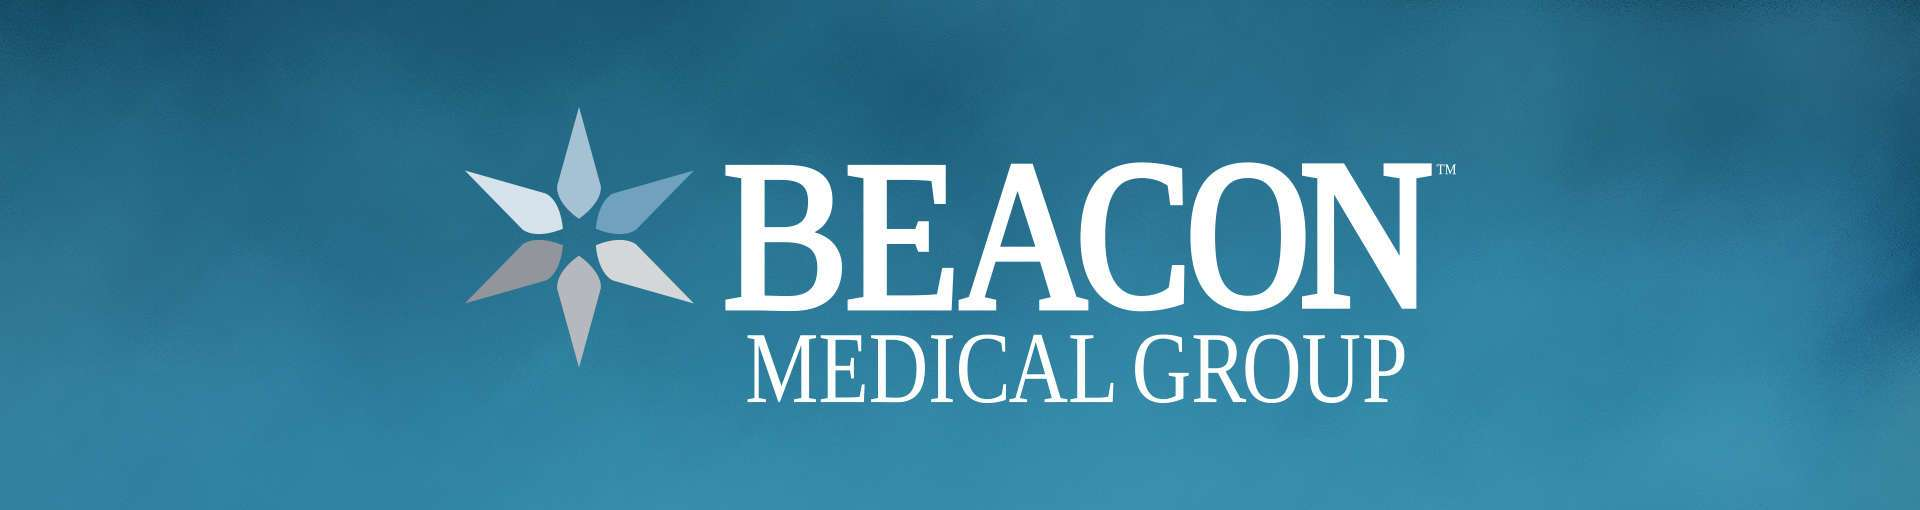 Beacon Medical Group Pediatric Hematology/Oncology